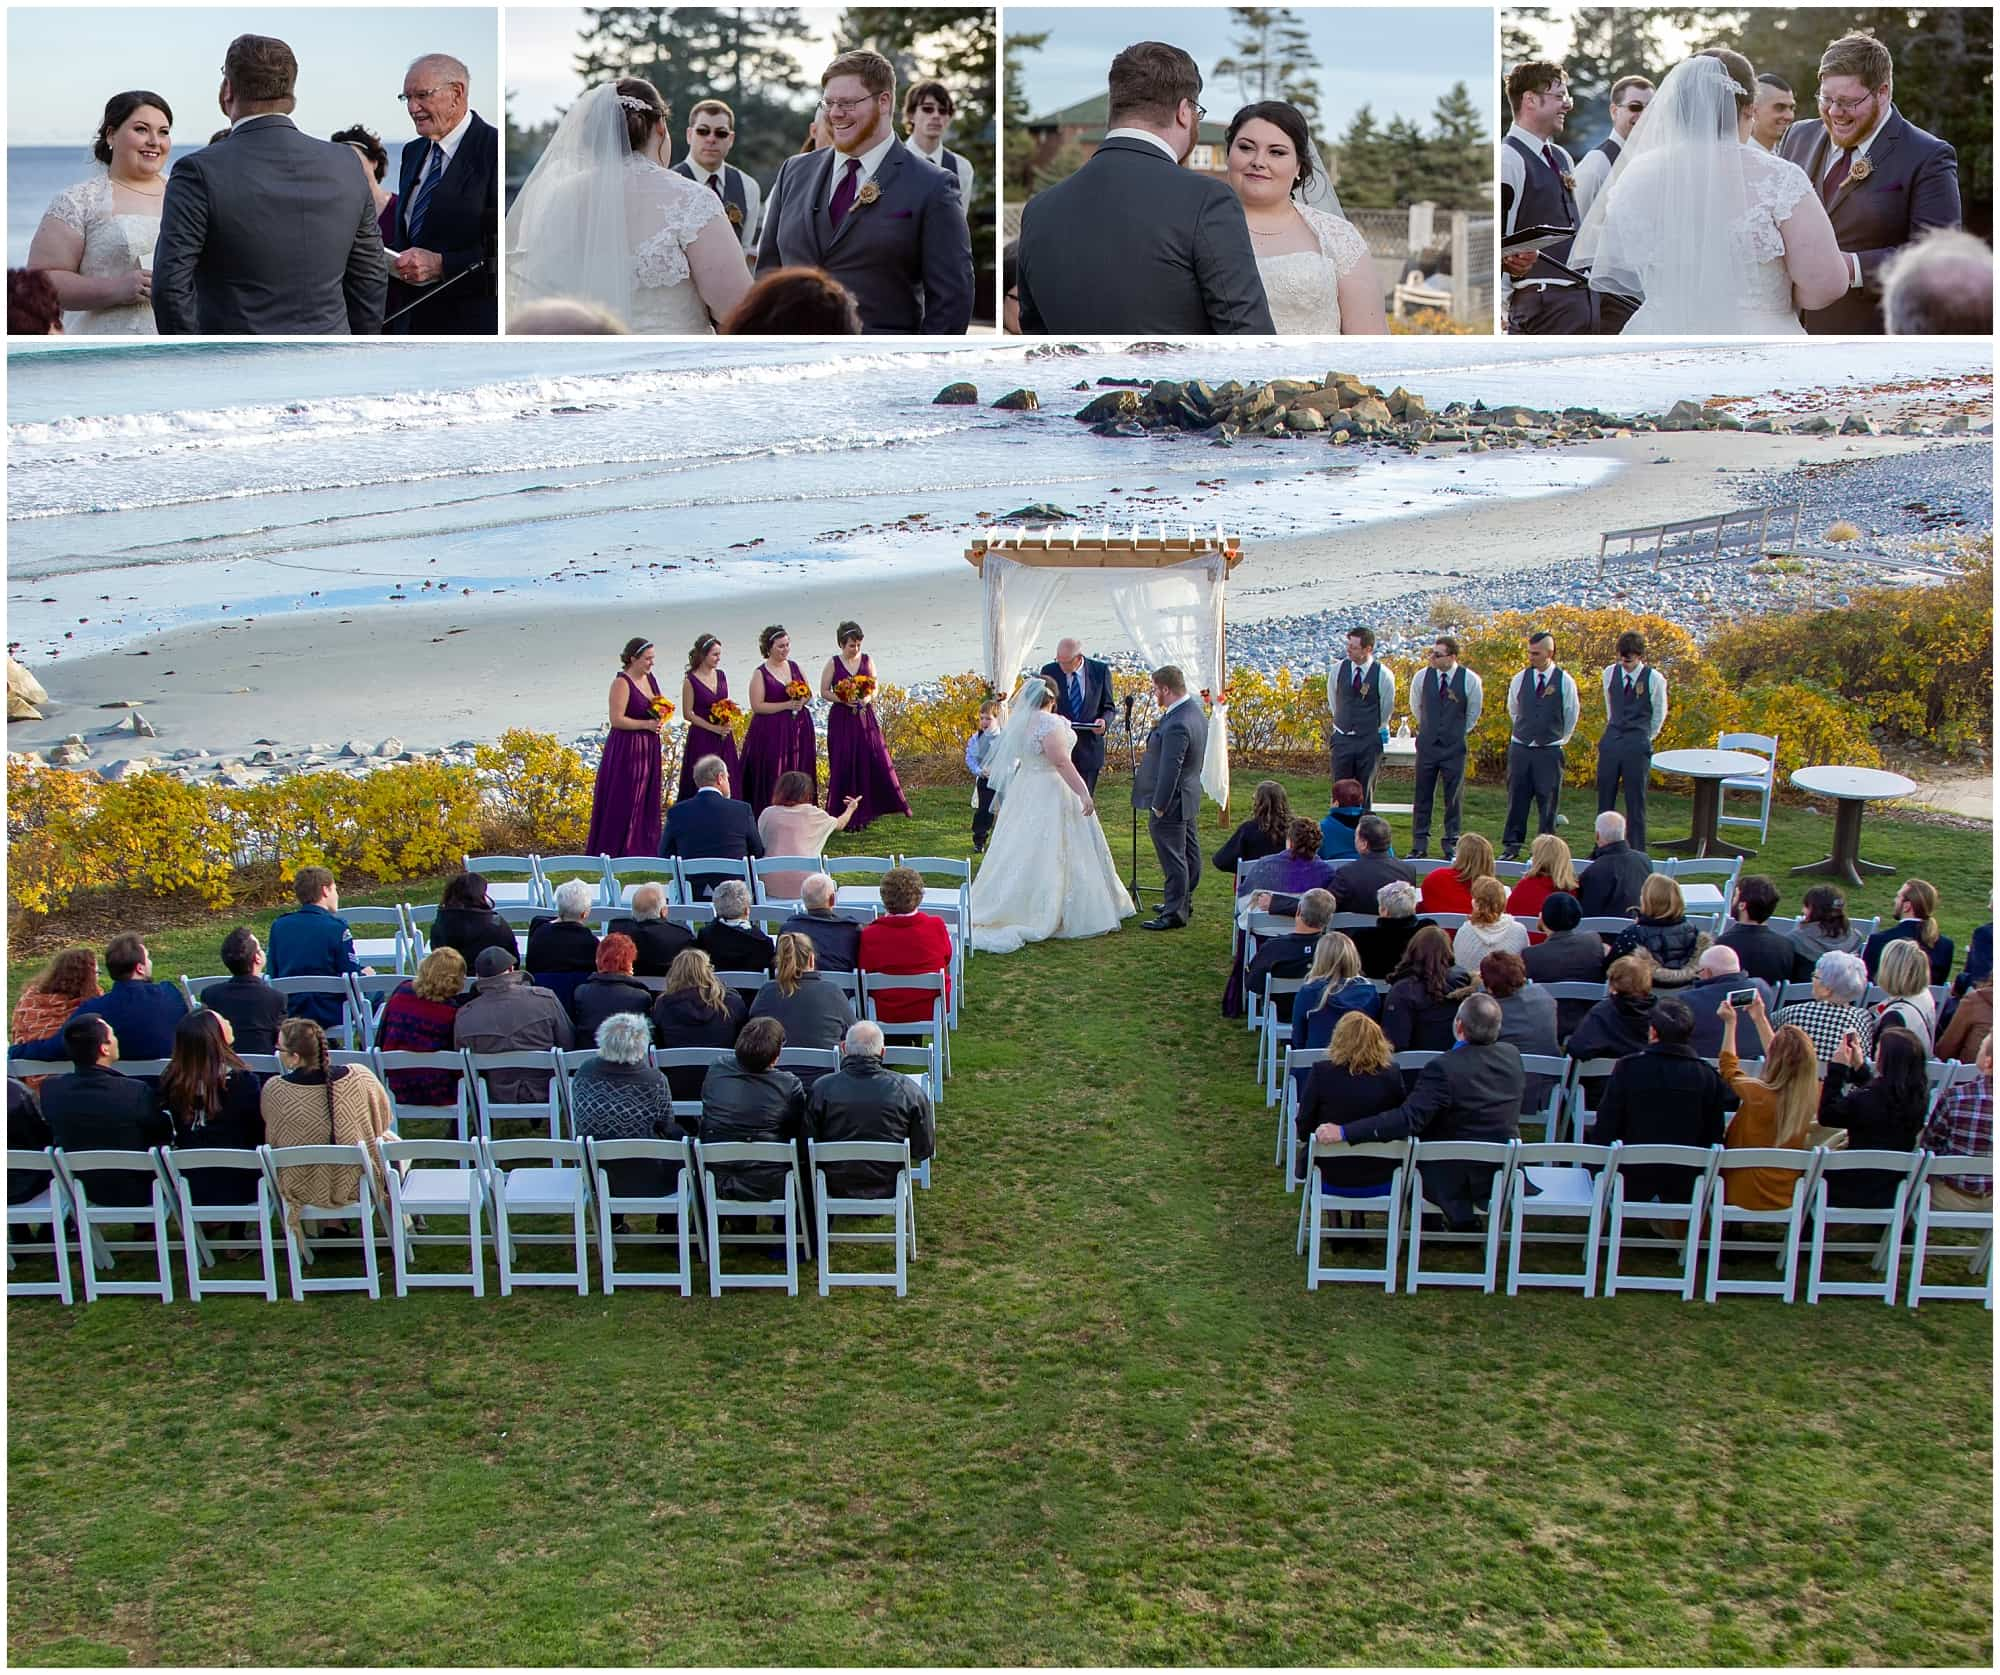 The bride and groom smile at each other during their wedding vows at White Point Beach Resort in Nova Scotia.